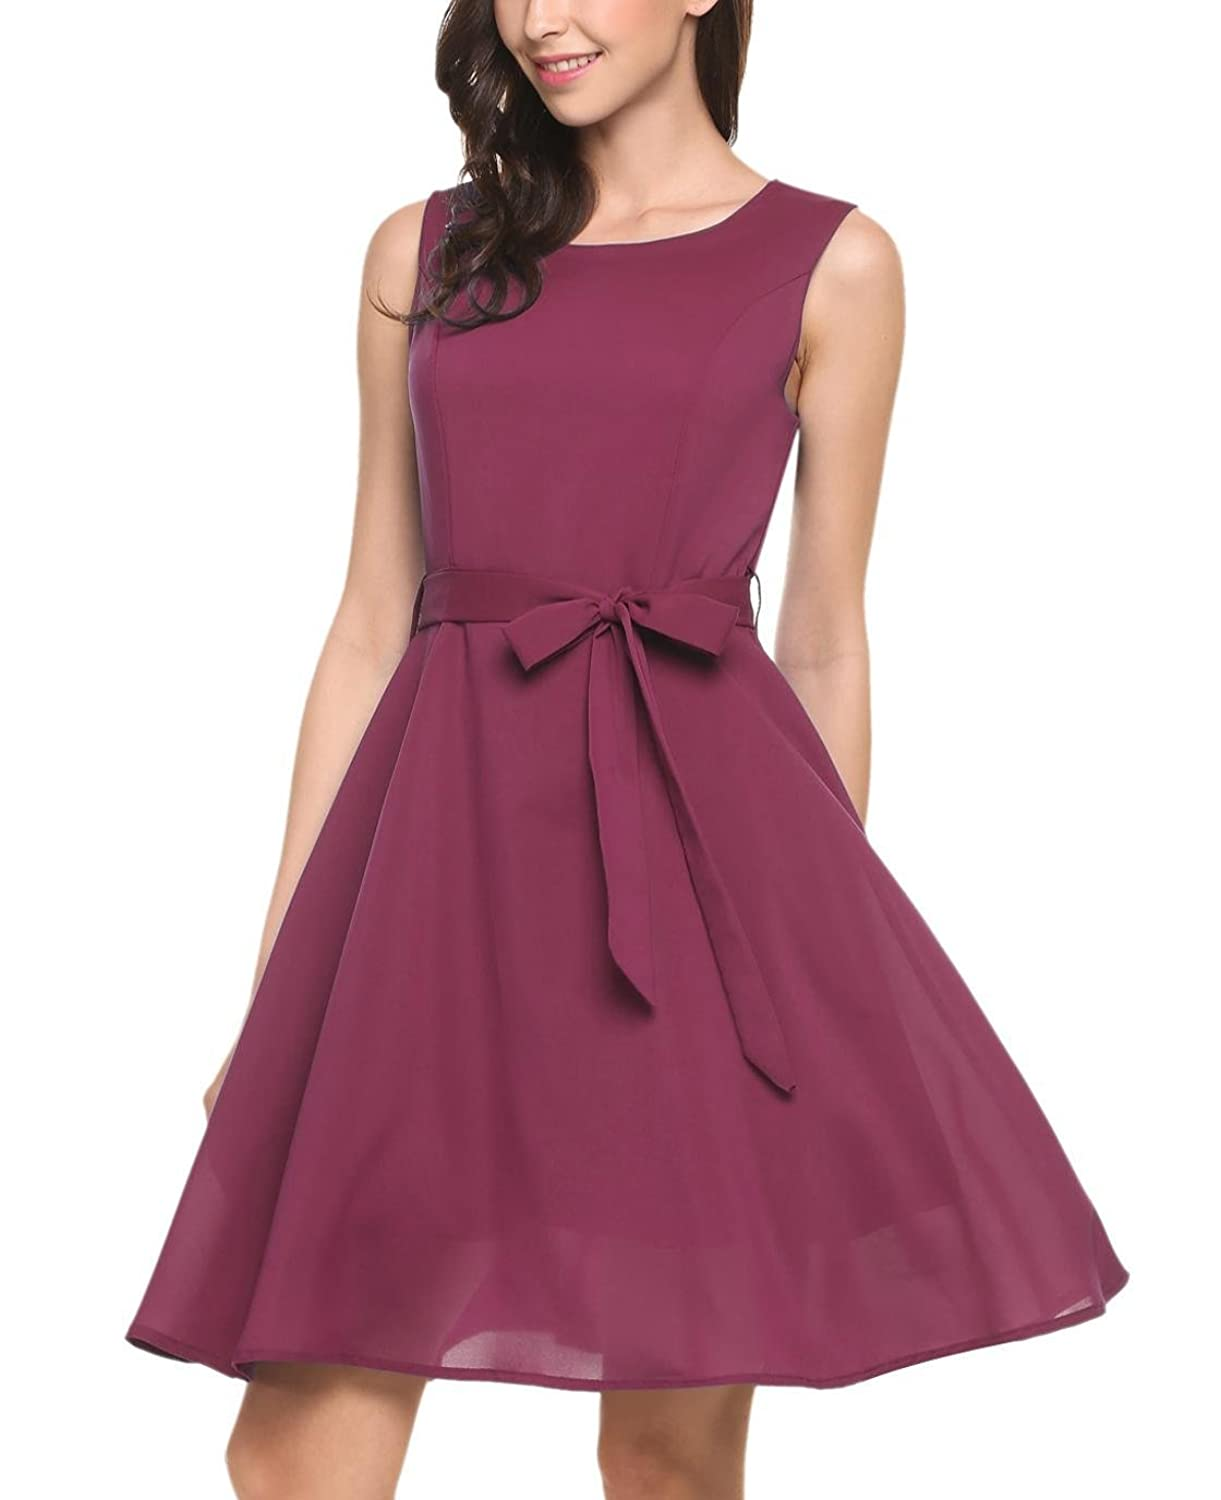 c1ad6ee33dc7 Features: back zipper, waistband decoration, scoop neck, sleeveless, solid  color, you will love this dress. A-line pleated style, sundress, swing dress,  ...